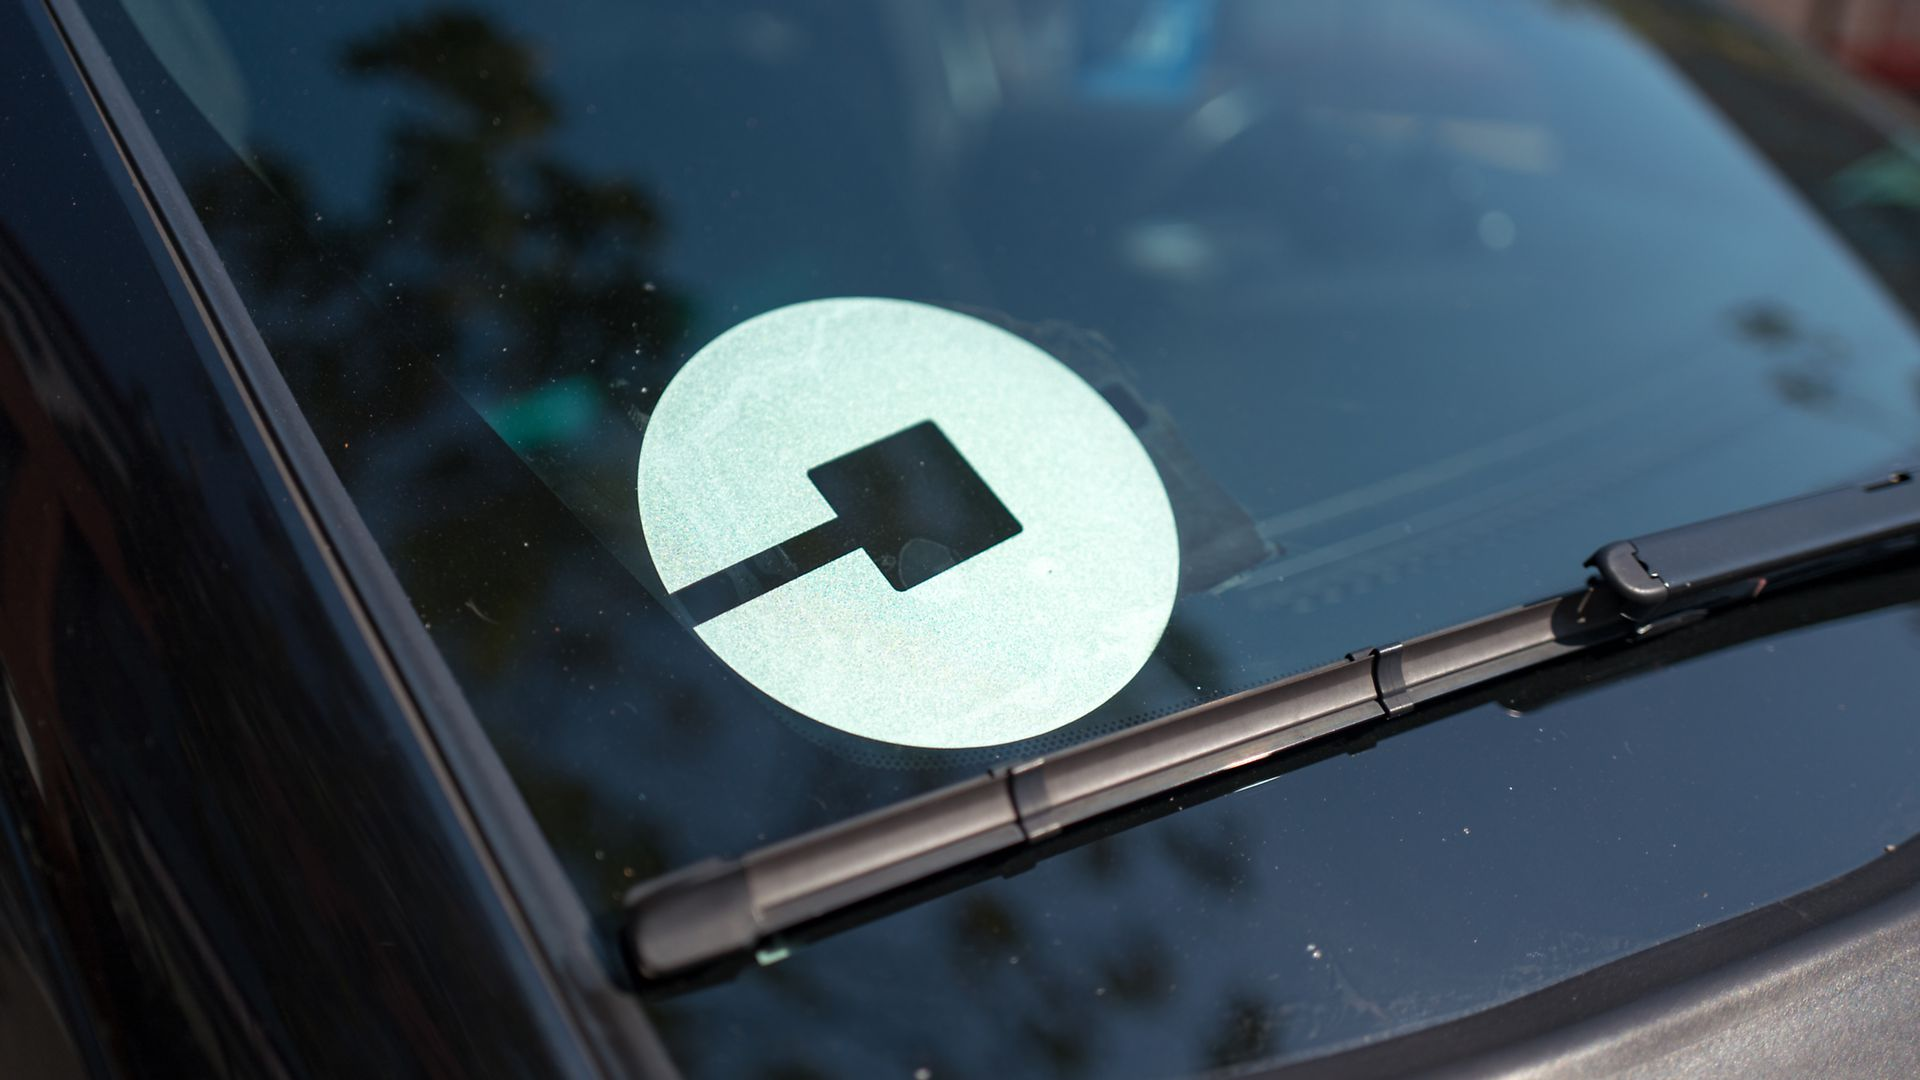 Car windshield with Uber logo.